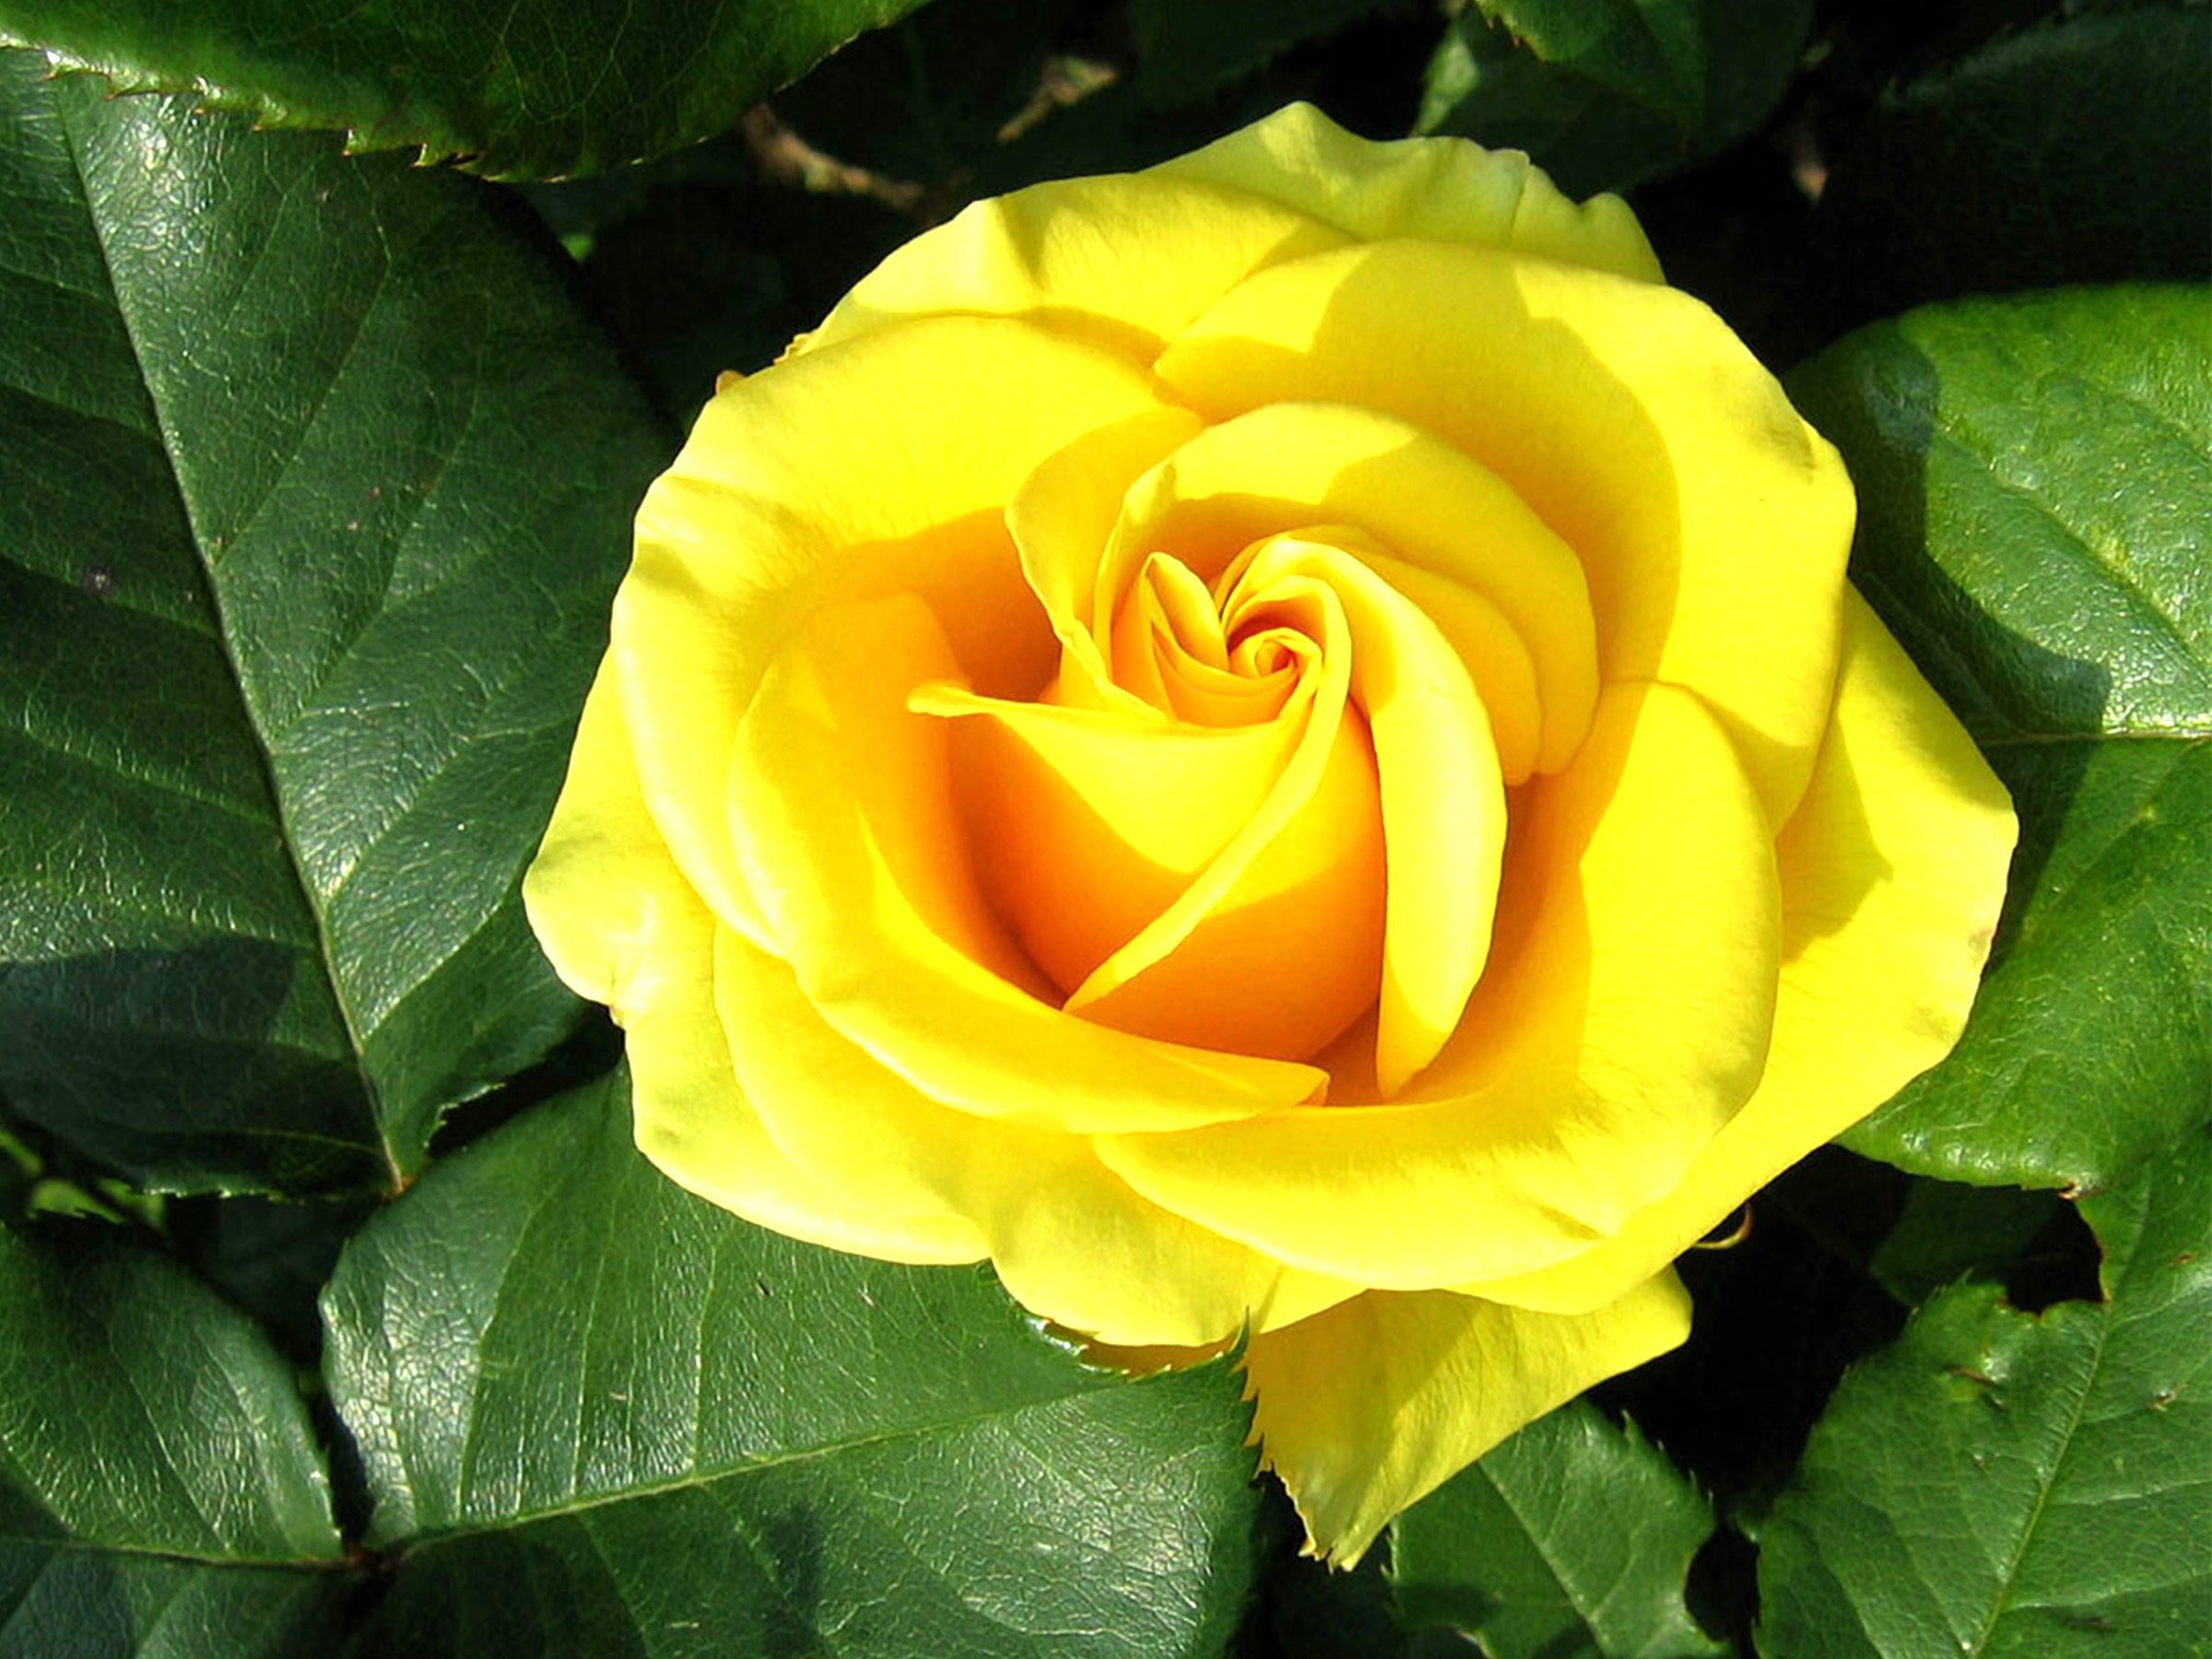 Hd wallpaper yellow rose - Yellow Rose Flower Wallpaper With Green Leaves Most Hd Wallpapers